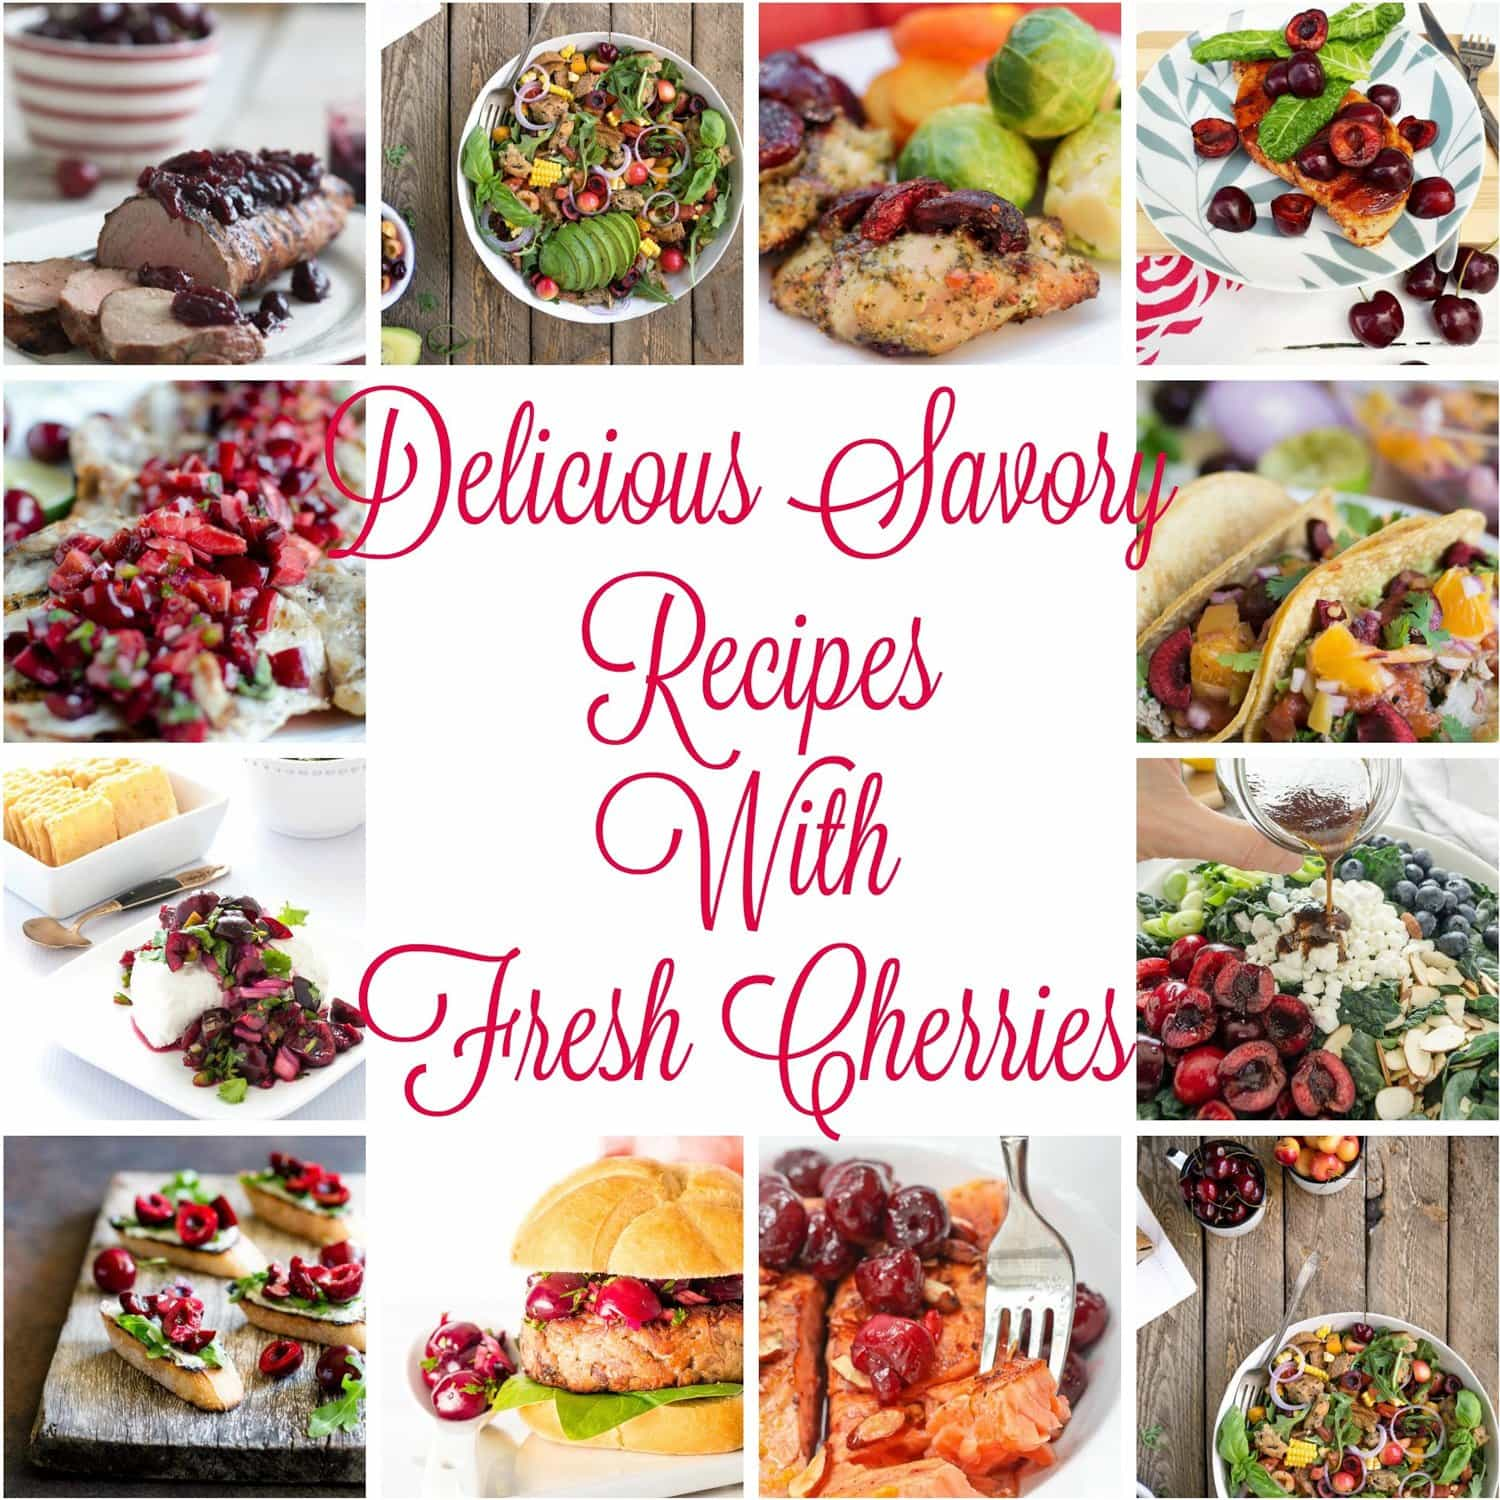 Delicious Savory Recipes With Fresh Cherries